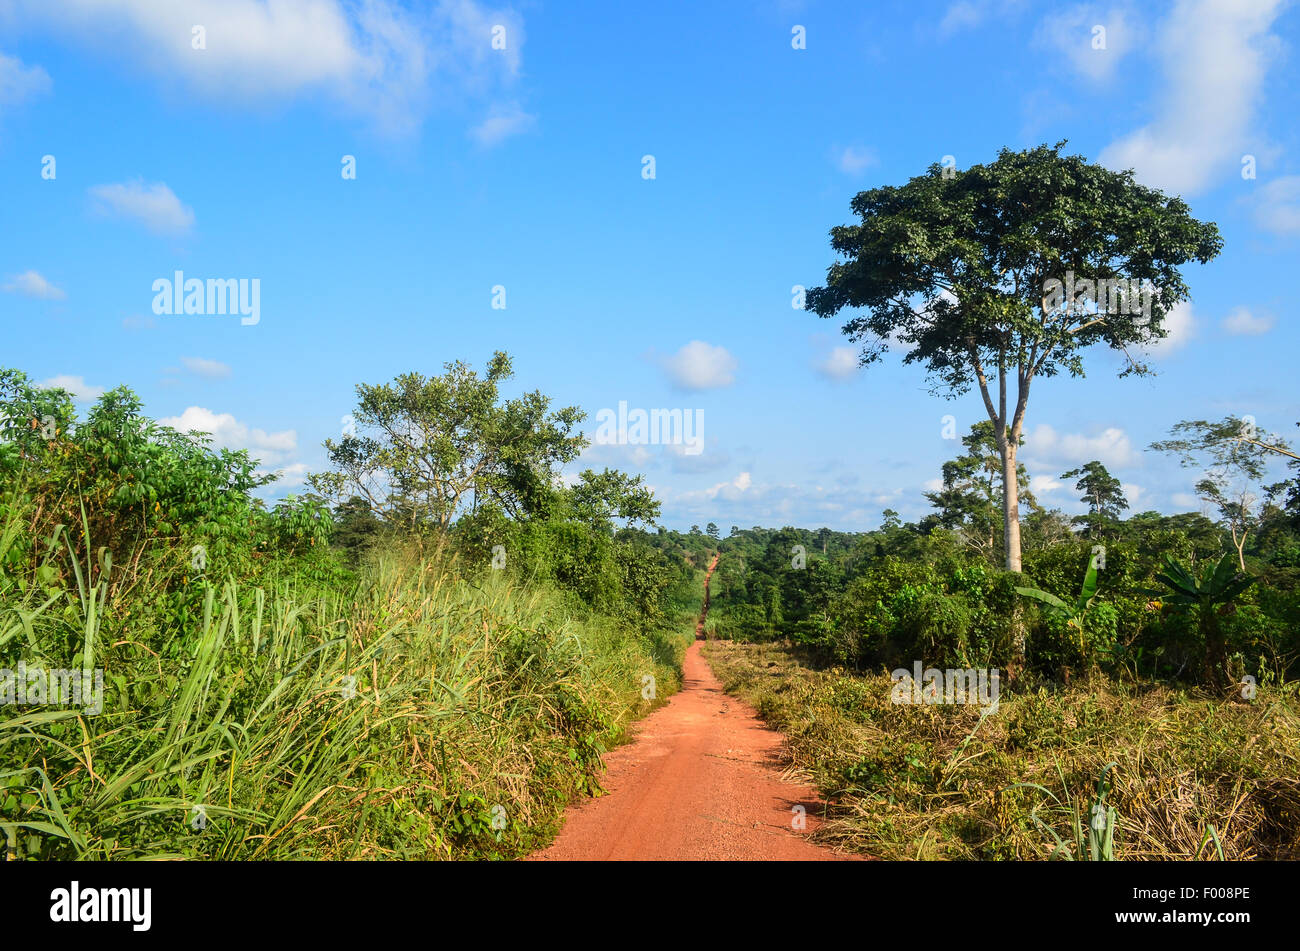 Dirt road into the Ghanaian countryside - Stock Image